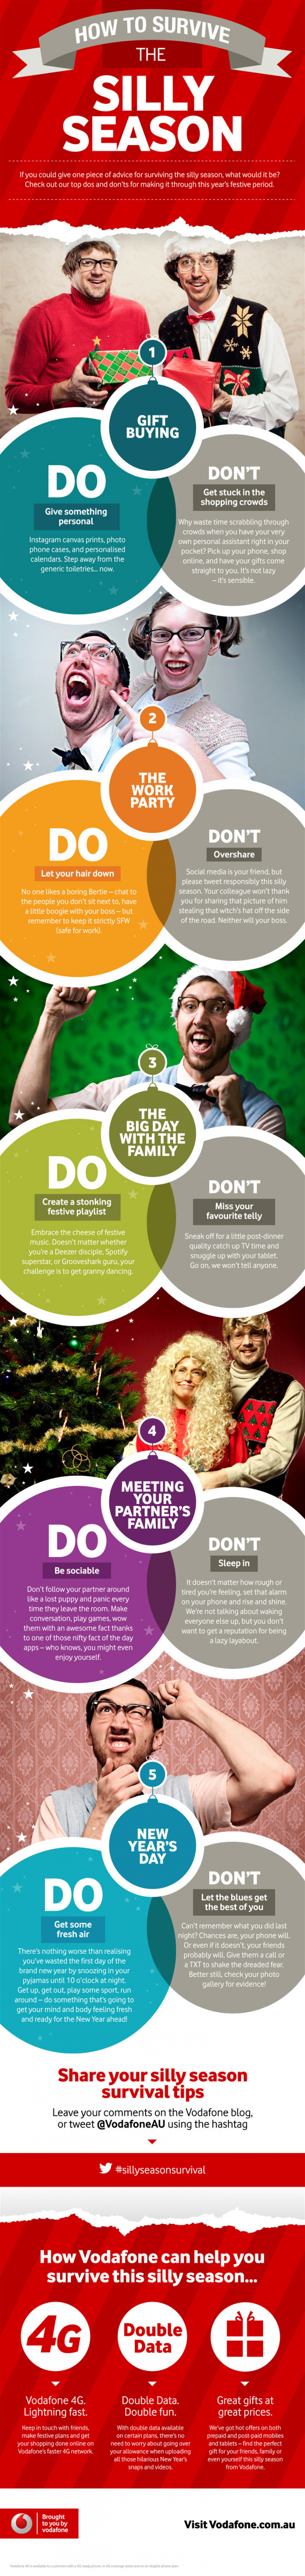 How to survive the Silly Season Infographic